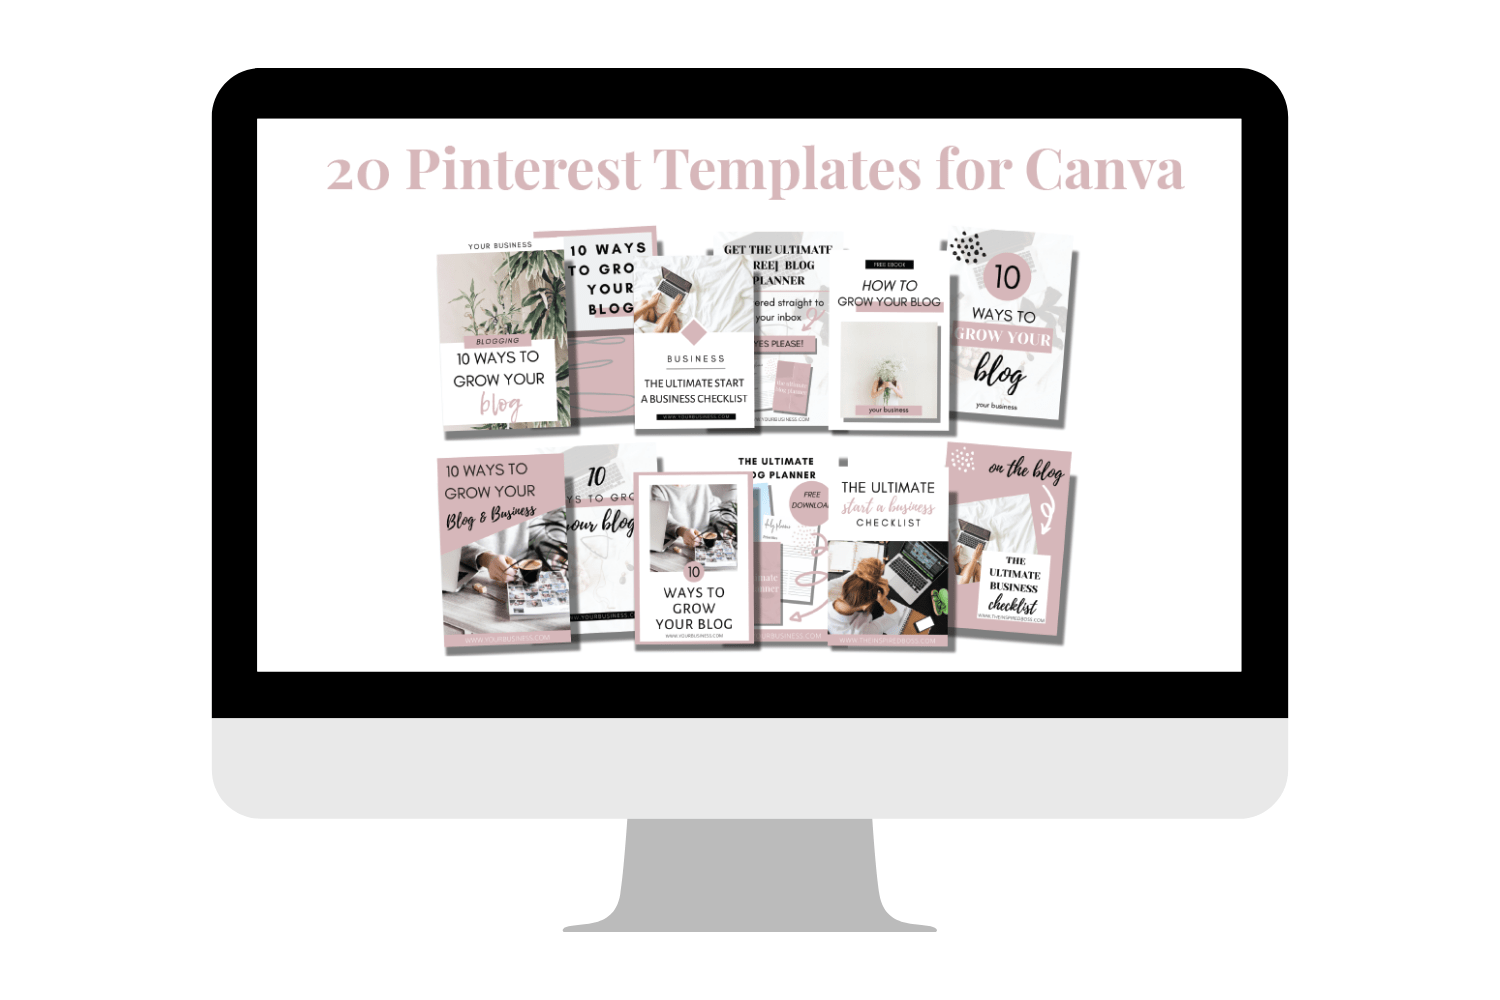 20 Pinterest templates for Canva